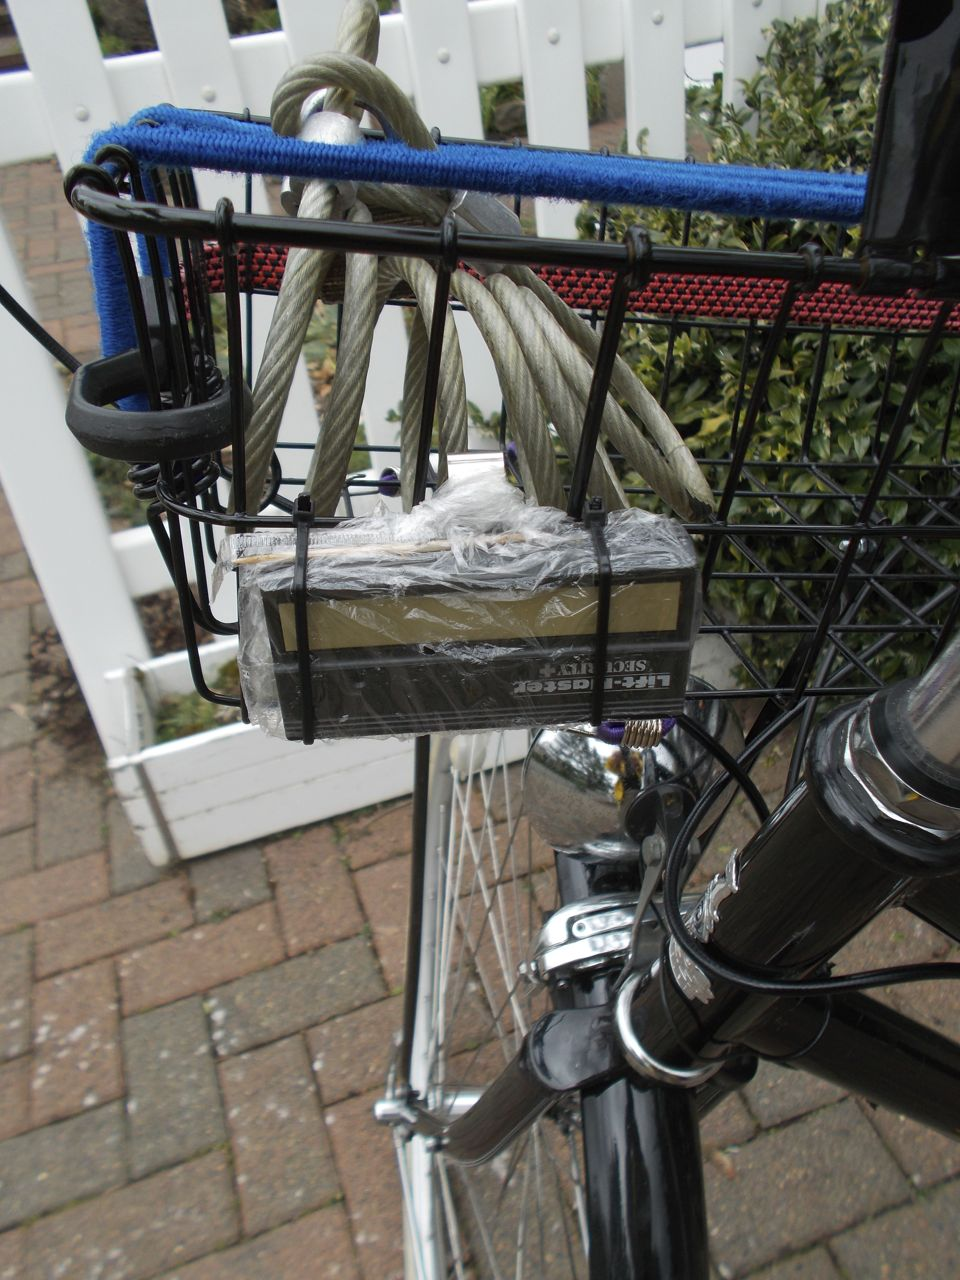 The upright cyclist the raleigh classic roadster nearly - Bicycle garage door opener ...